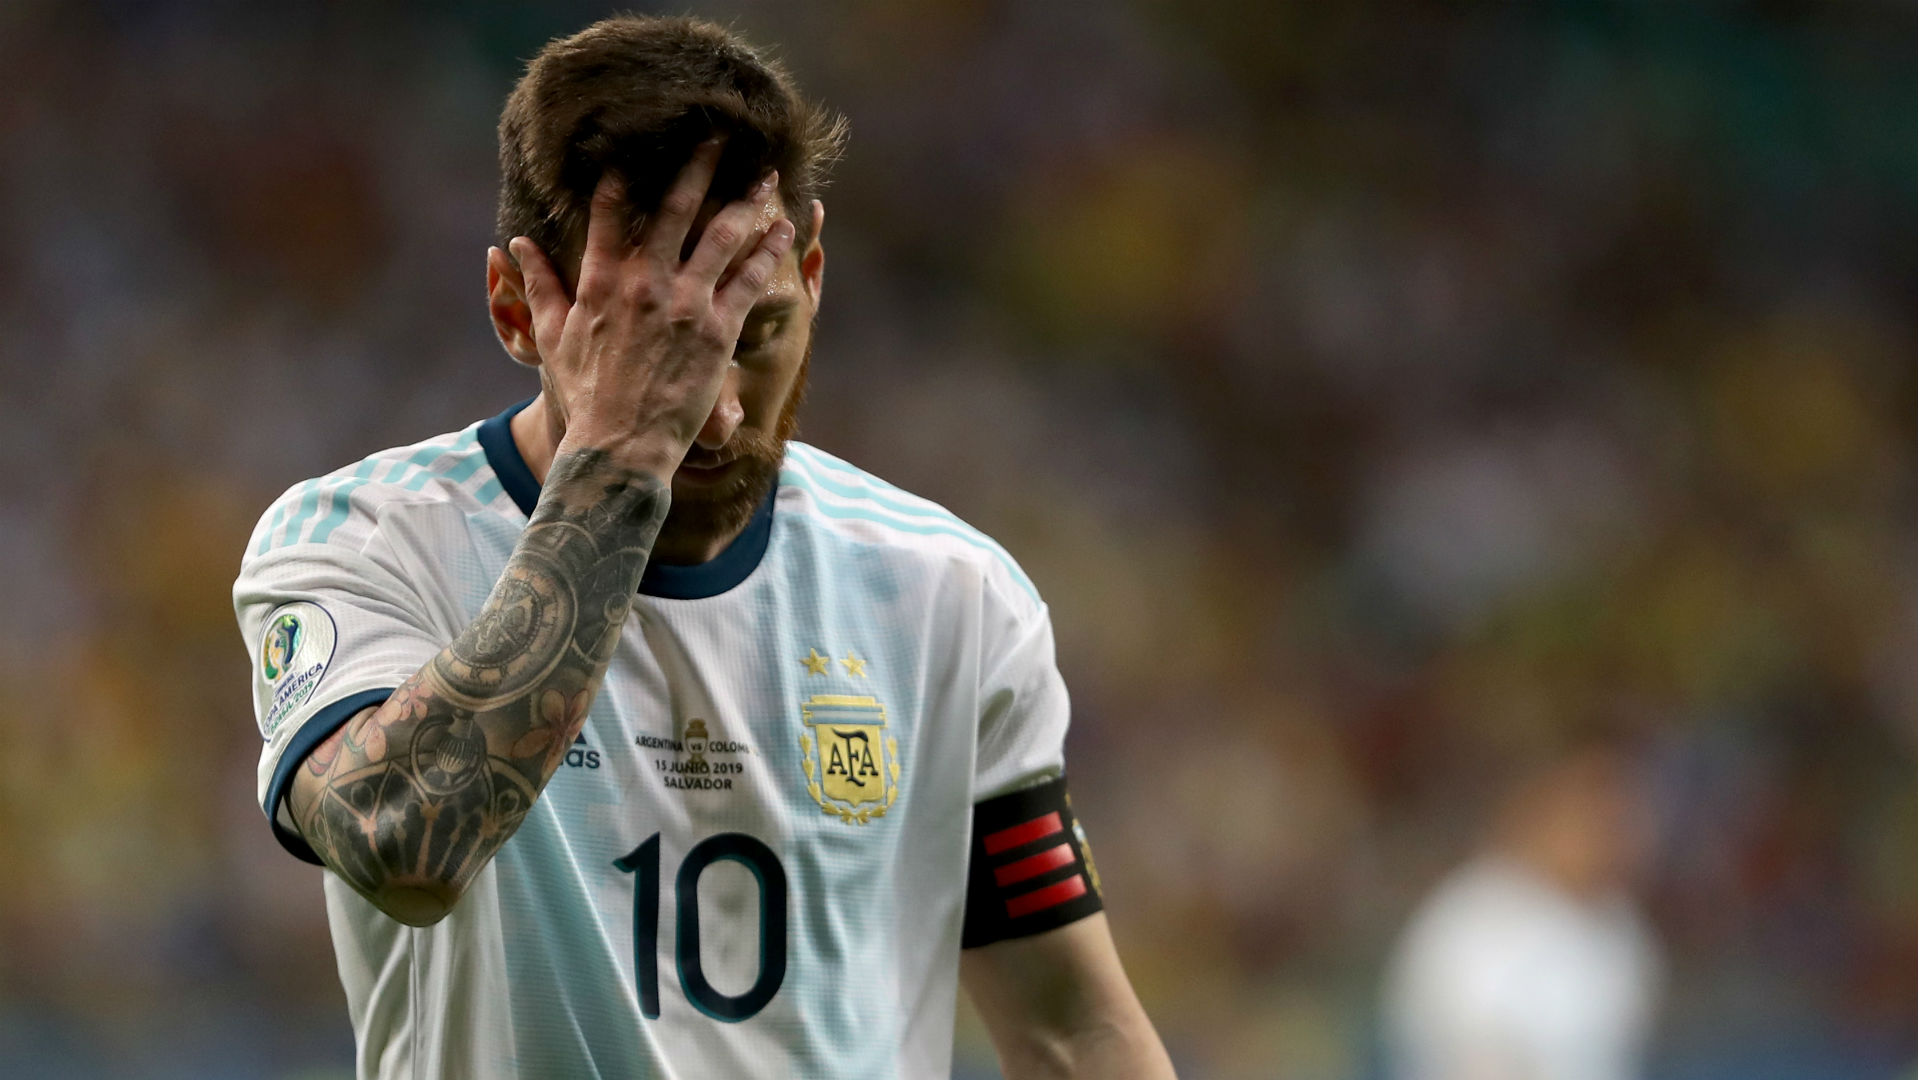 Scaloni criticises pitch after Argentina defeat